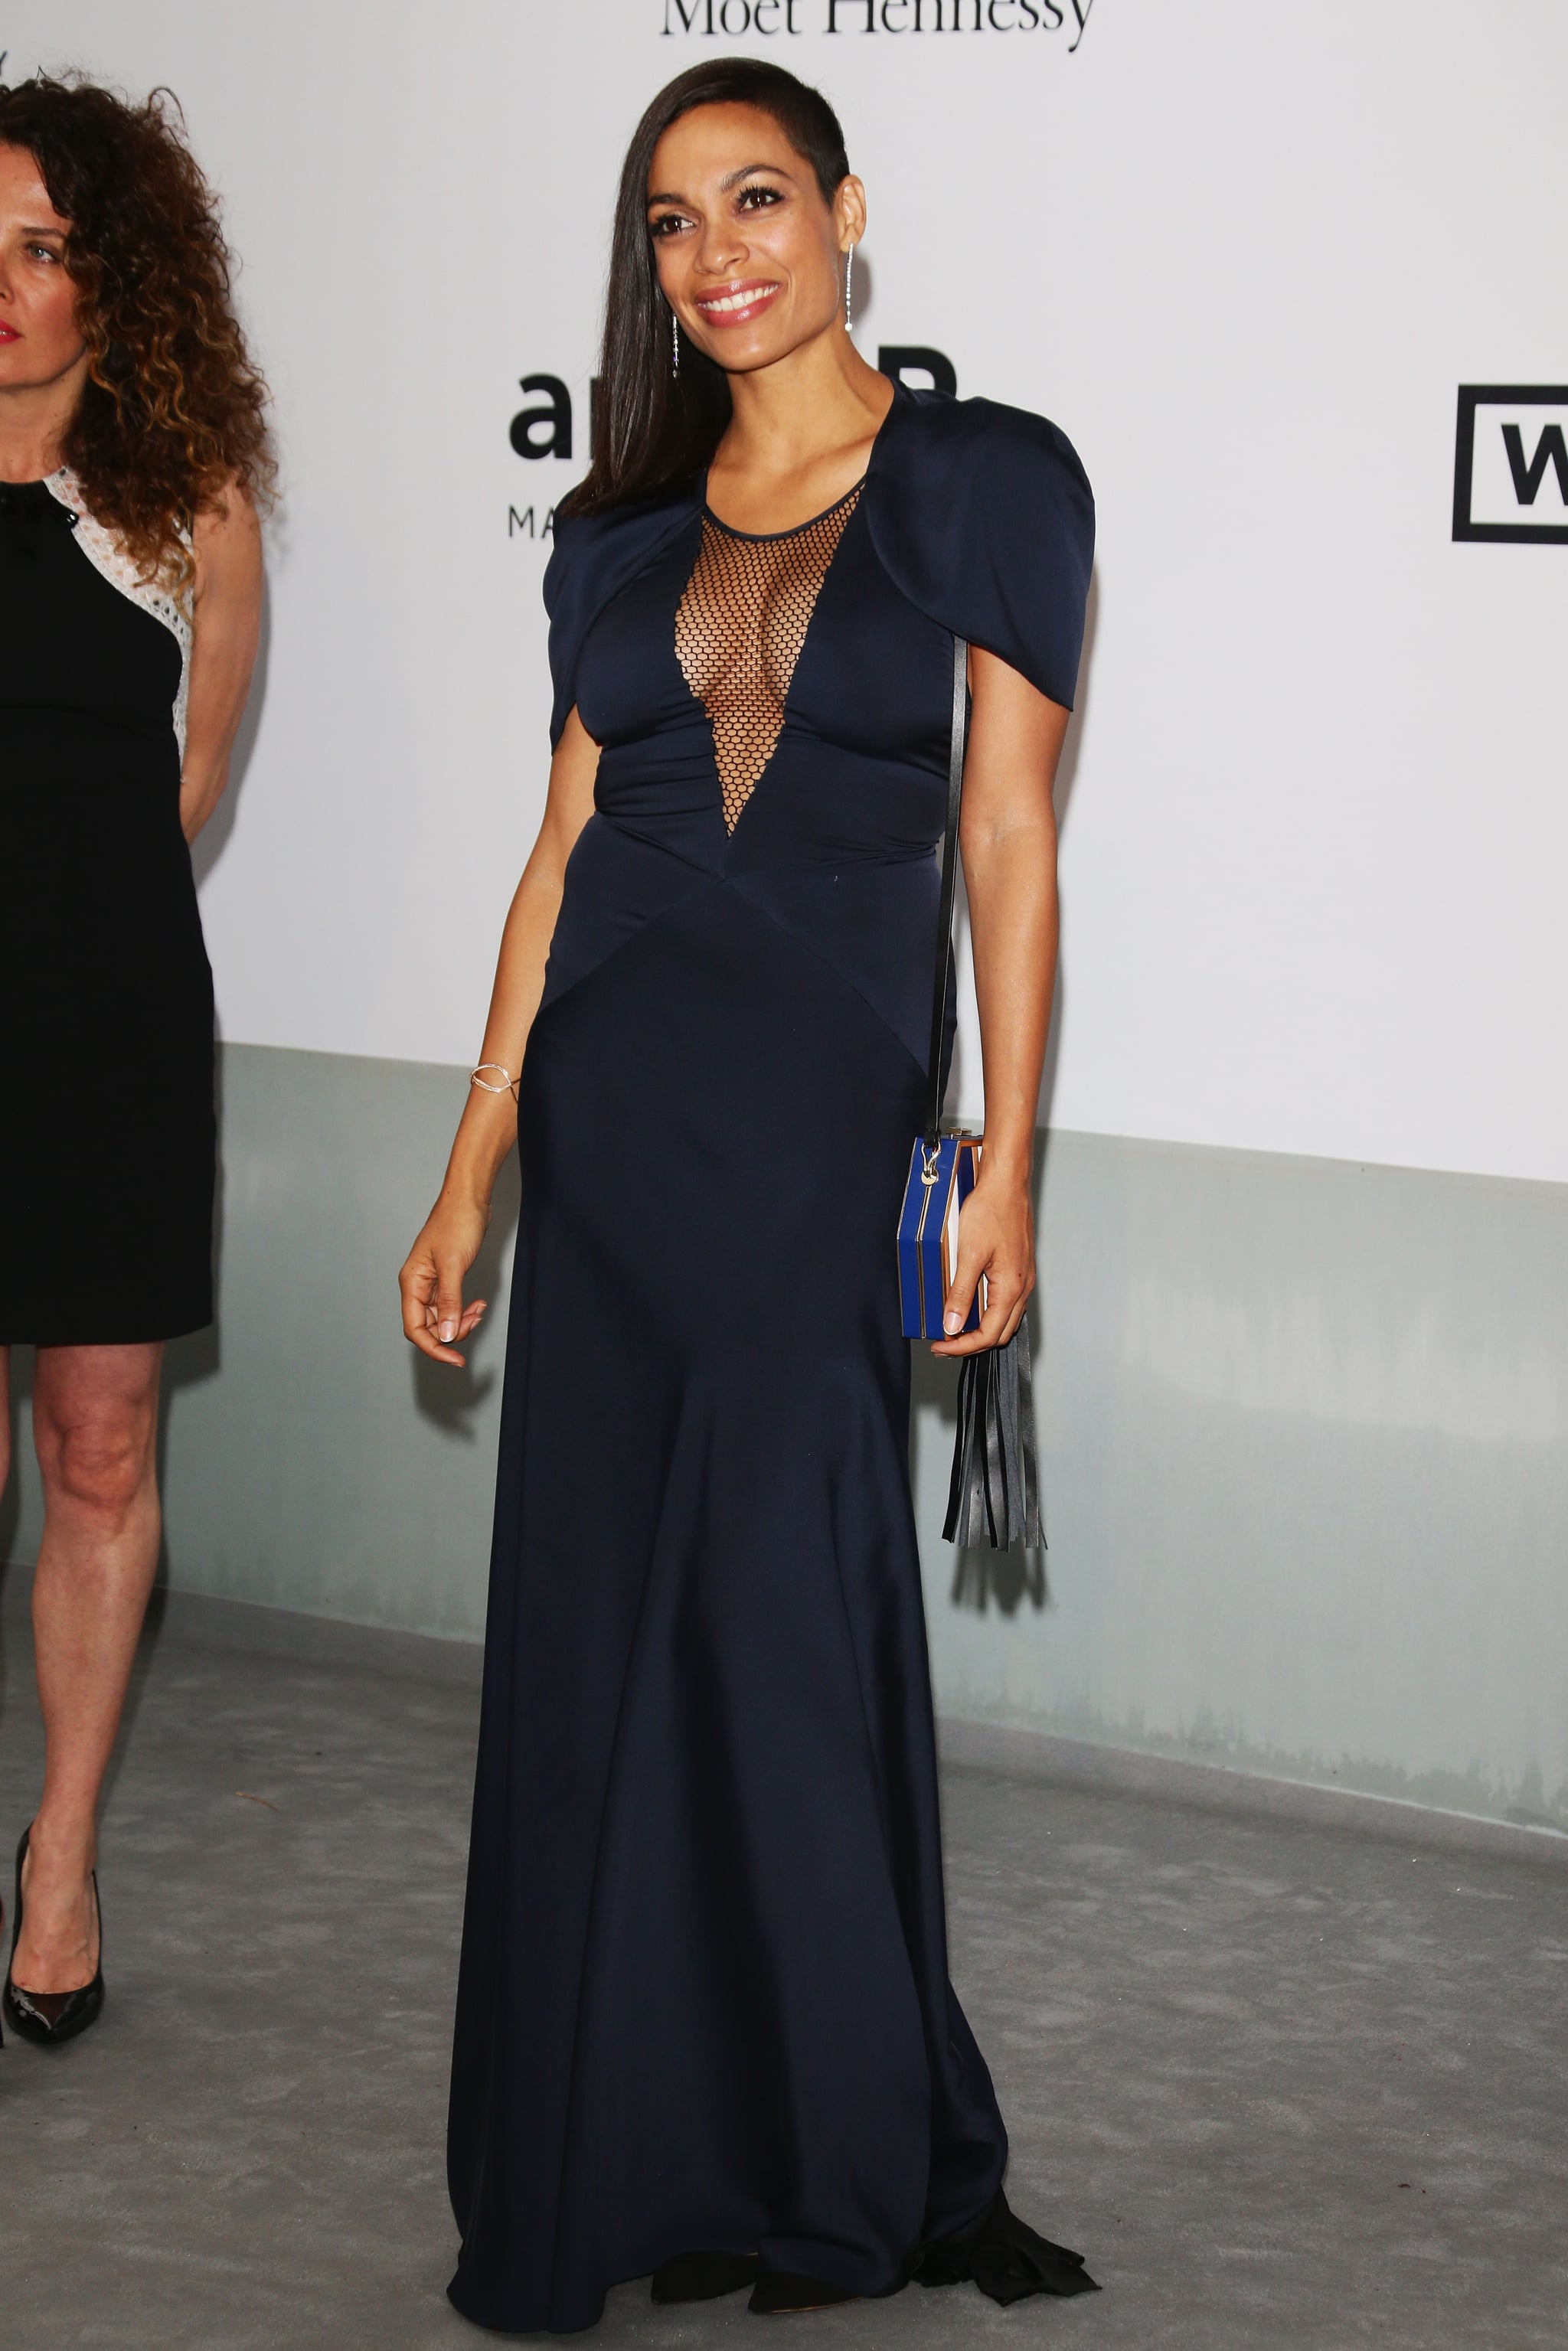 Rosario Dawson showed off her cleavage in a low-cut gown.